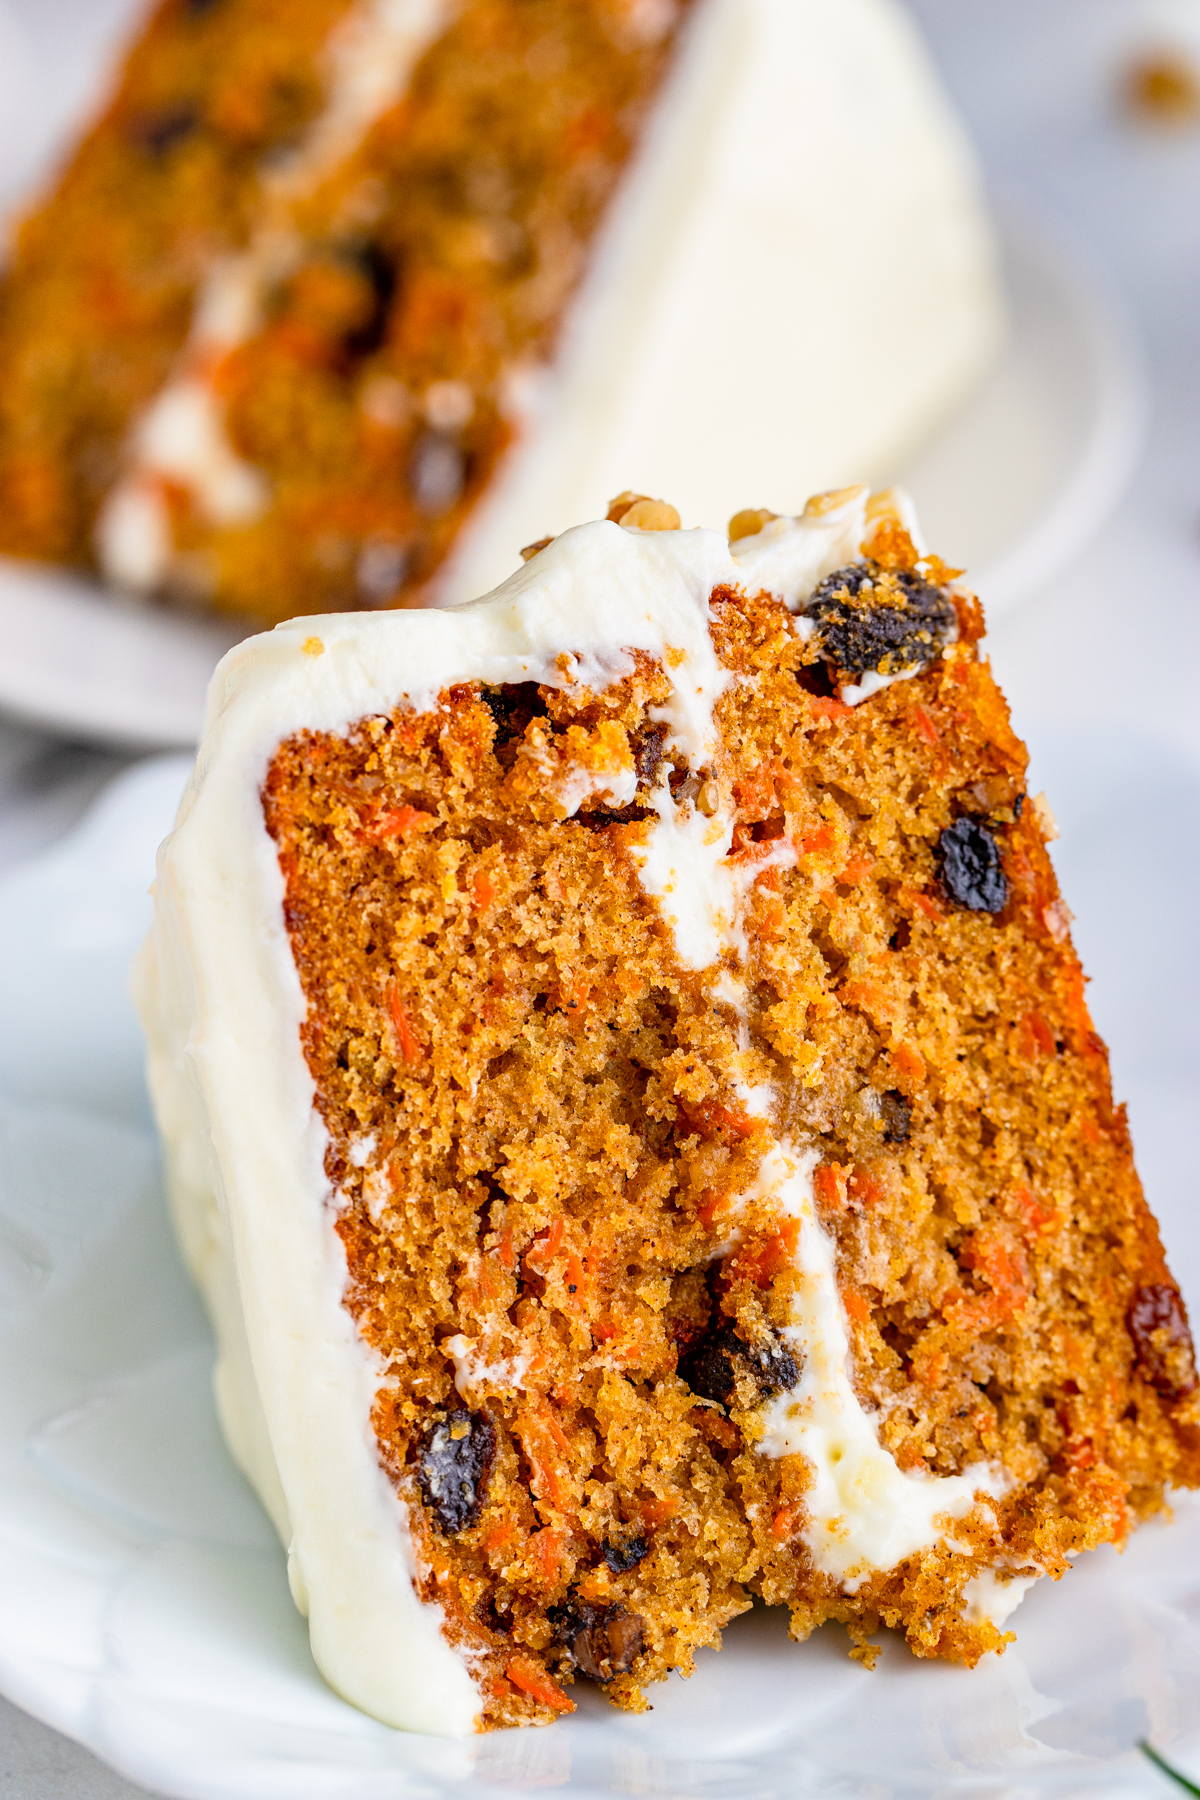 Close up of a slice of Layered Carrot Cake on white plate